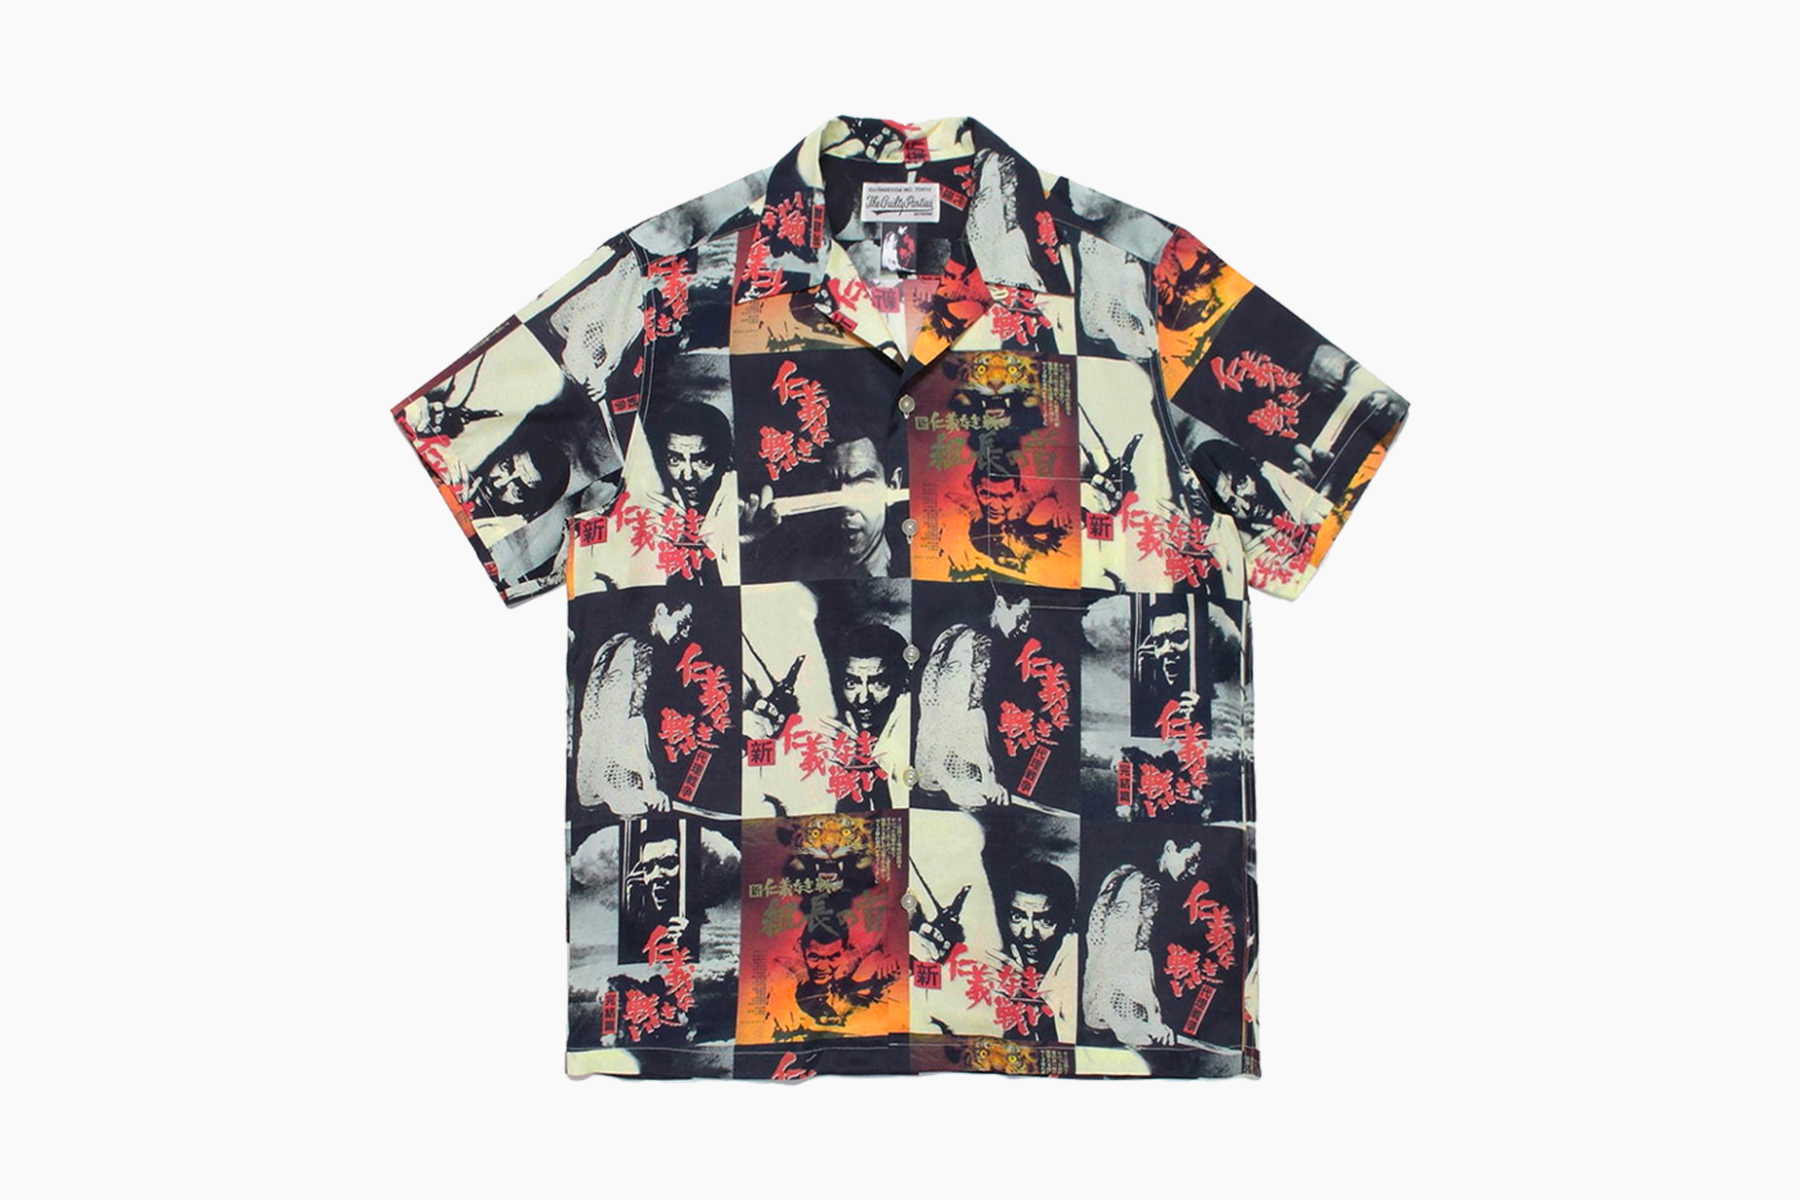 WACKO MARIA 'Battles Without Honor and Humanity' Hawaiian Shirts